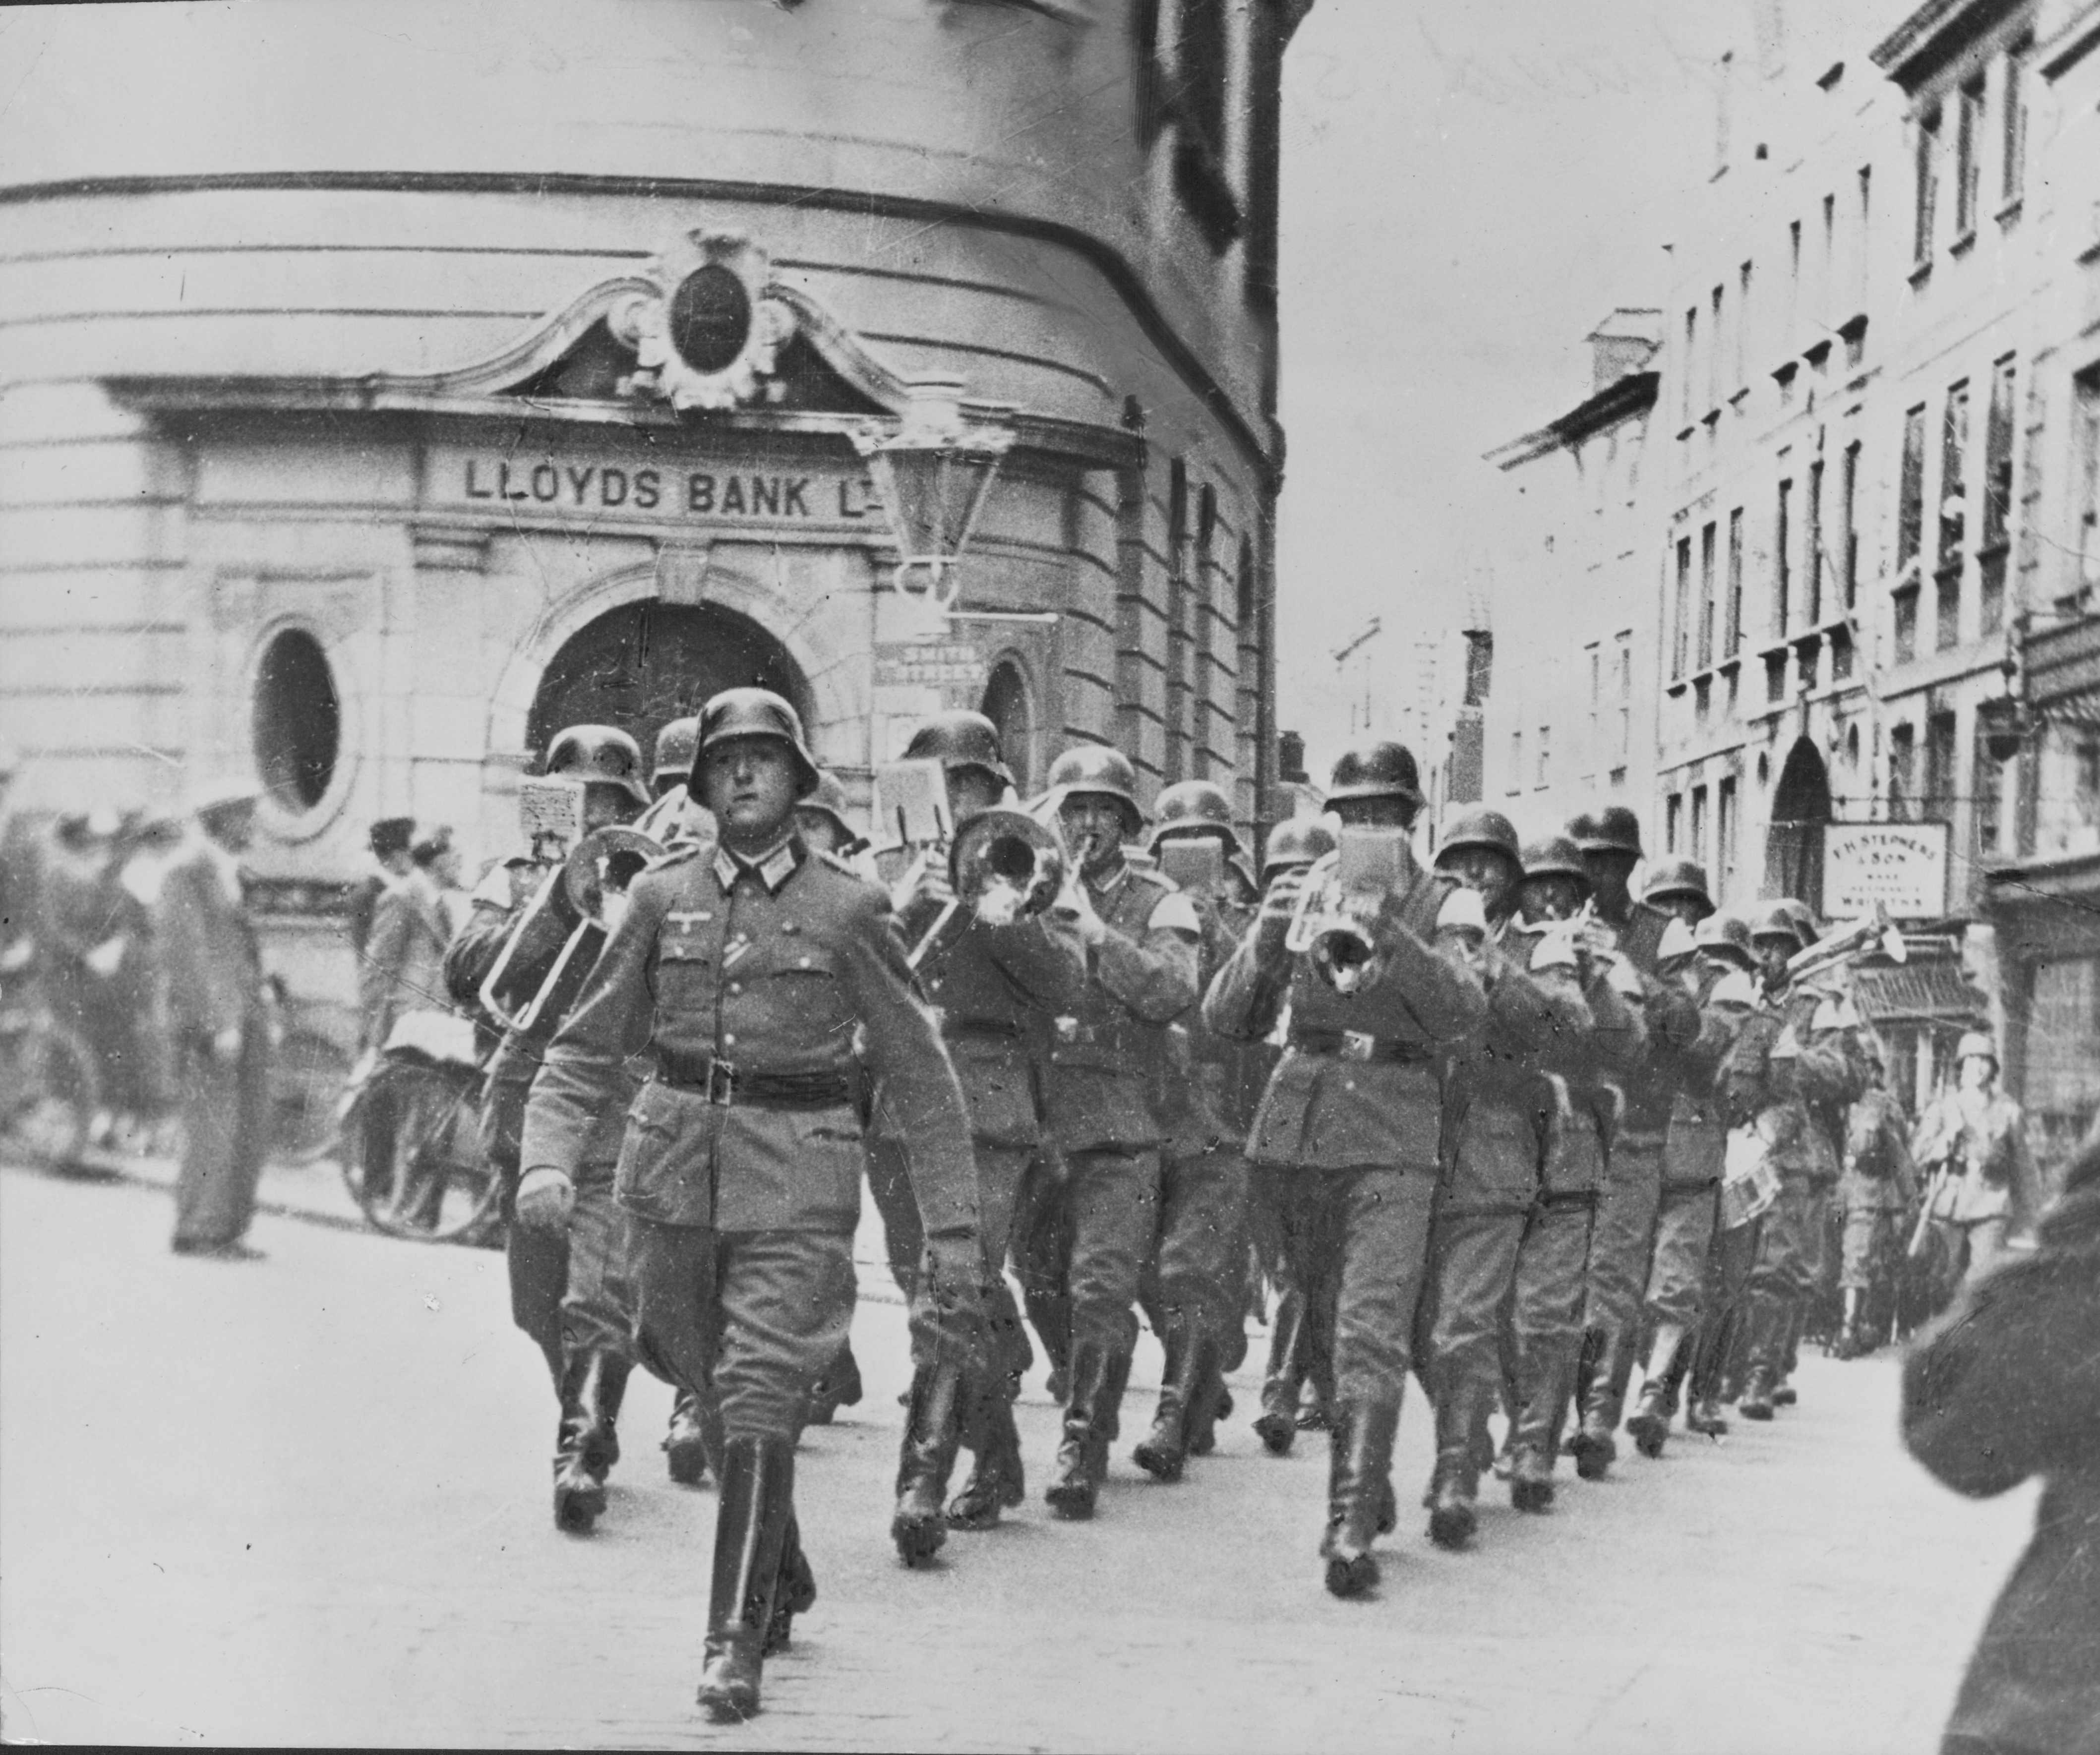 Nazis marching through Guernsey during the Second World War, 1940. (Photo by Express/Archive Photos/Getty Images)